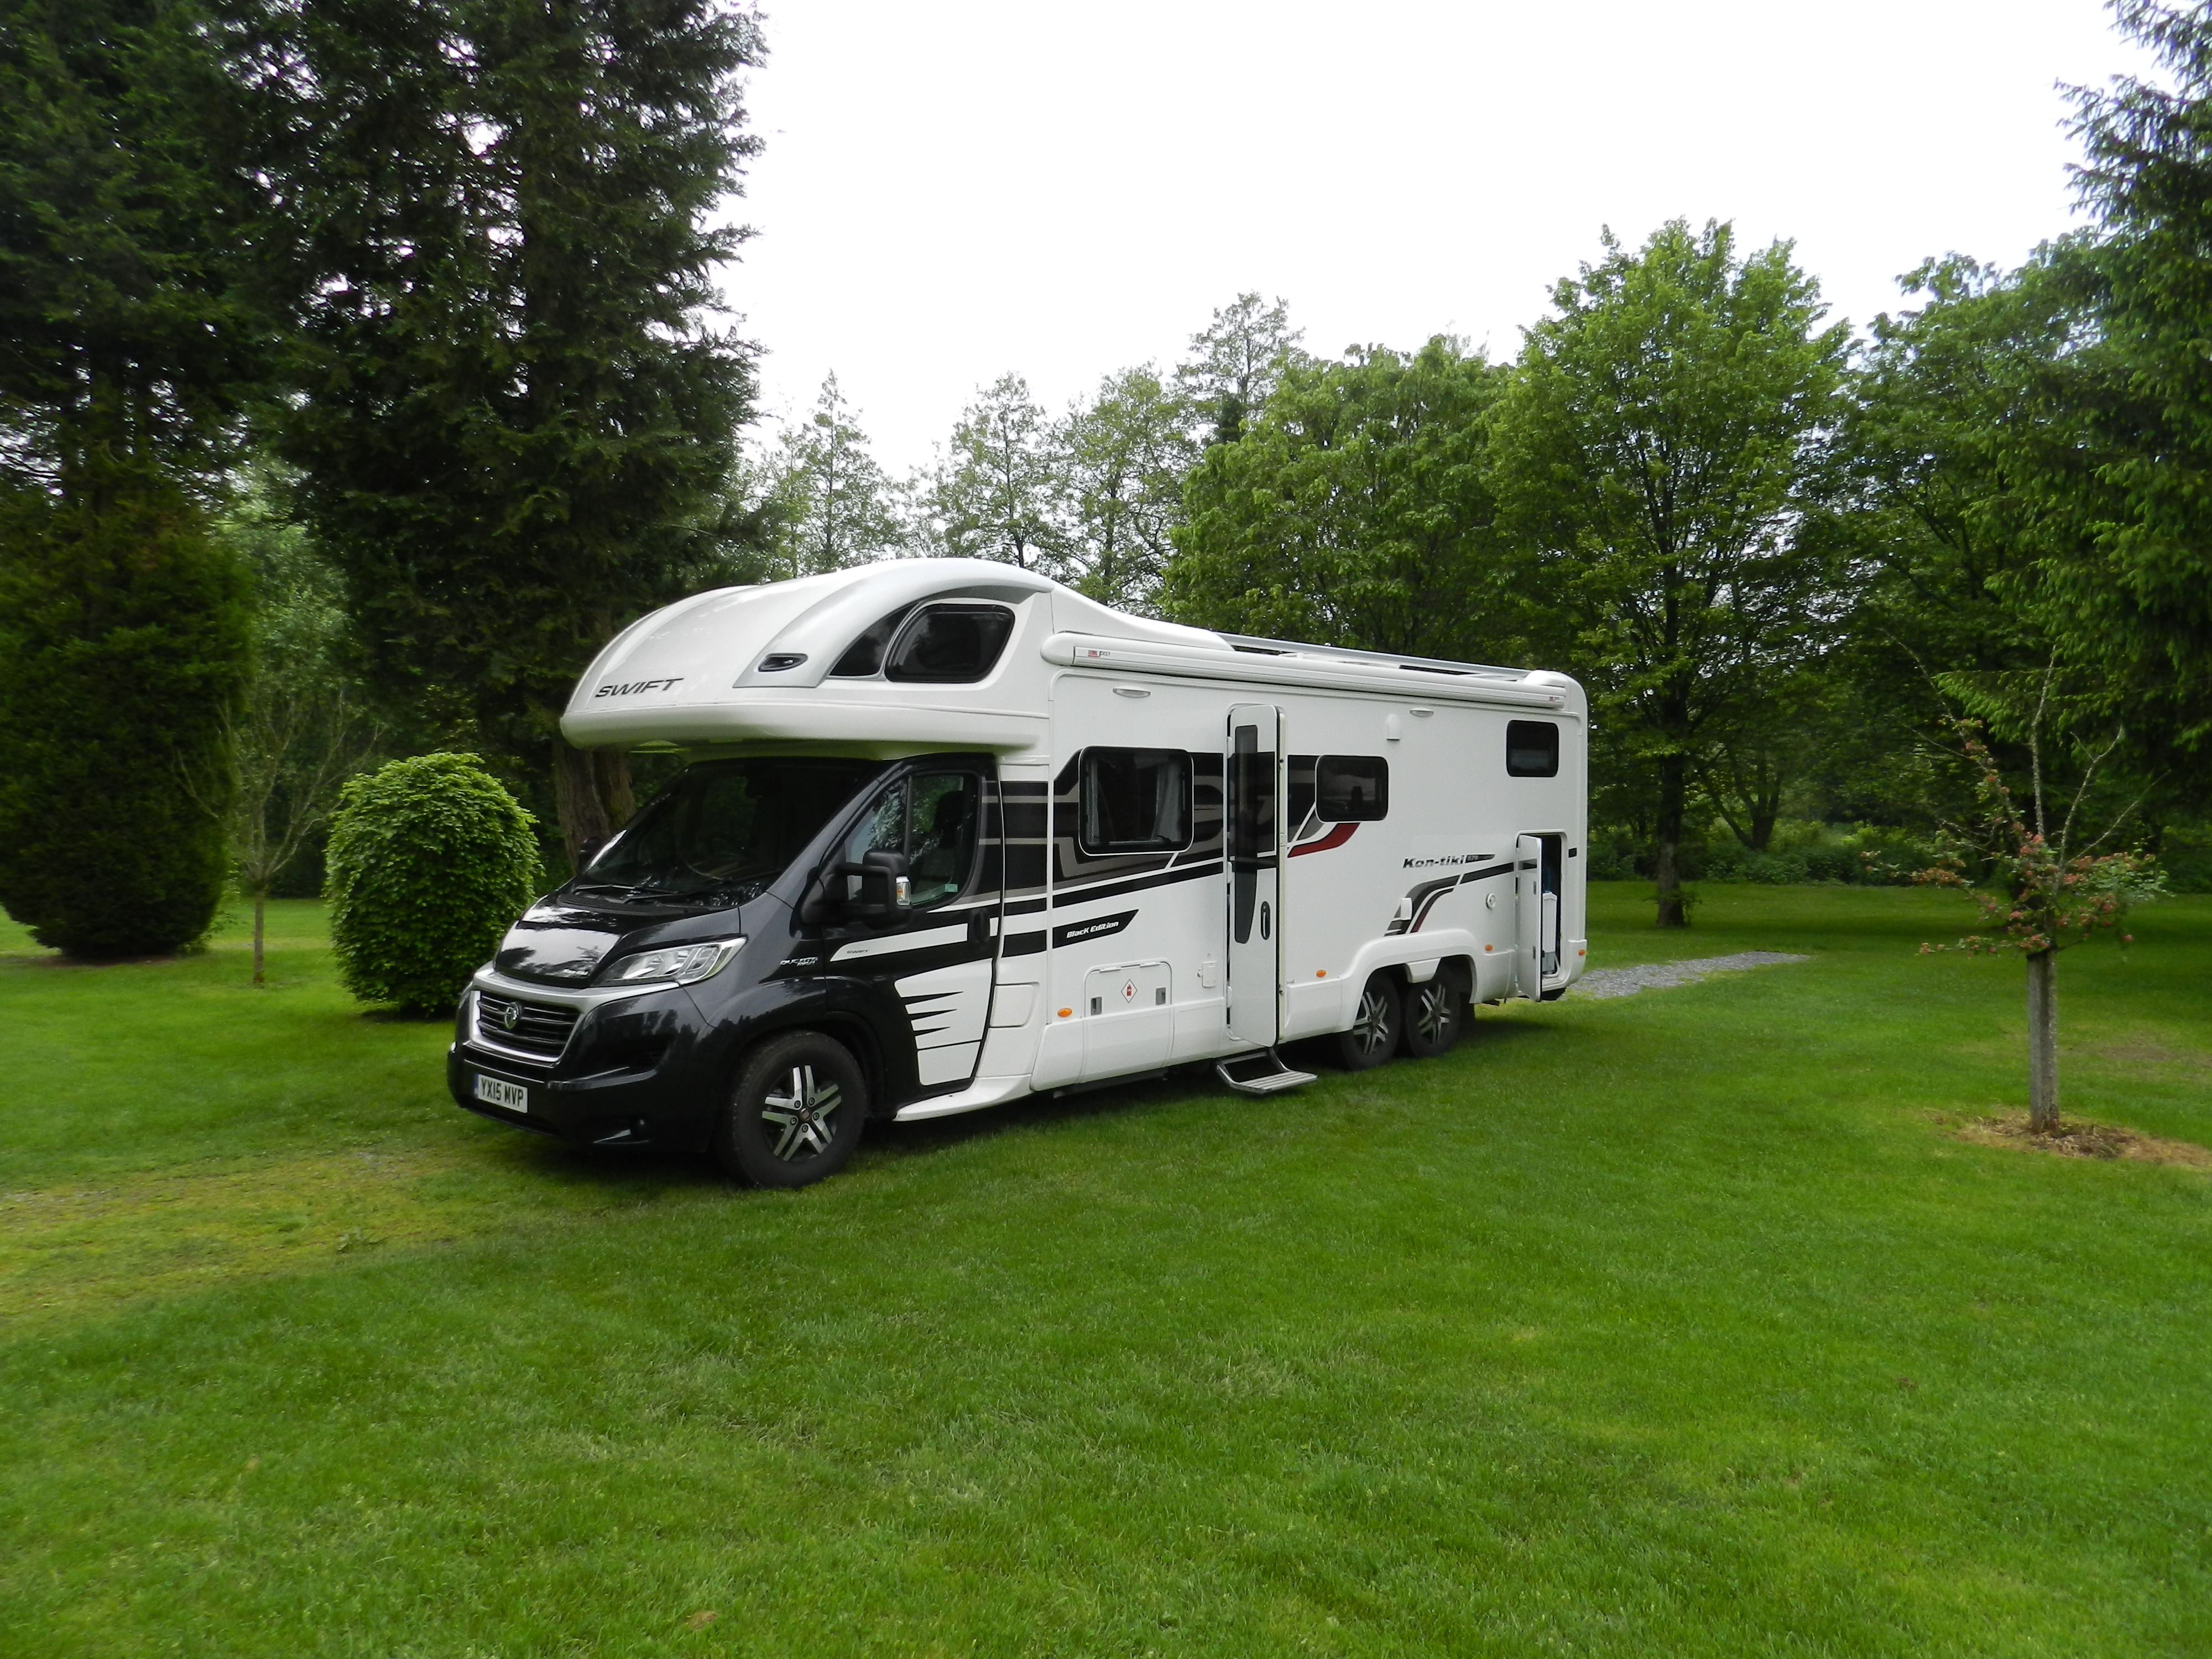 swift kontiki black edition review one year on motorhome voyager